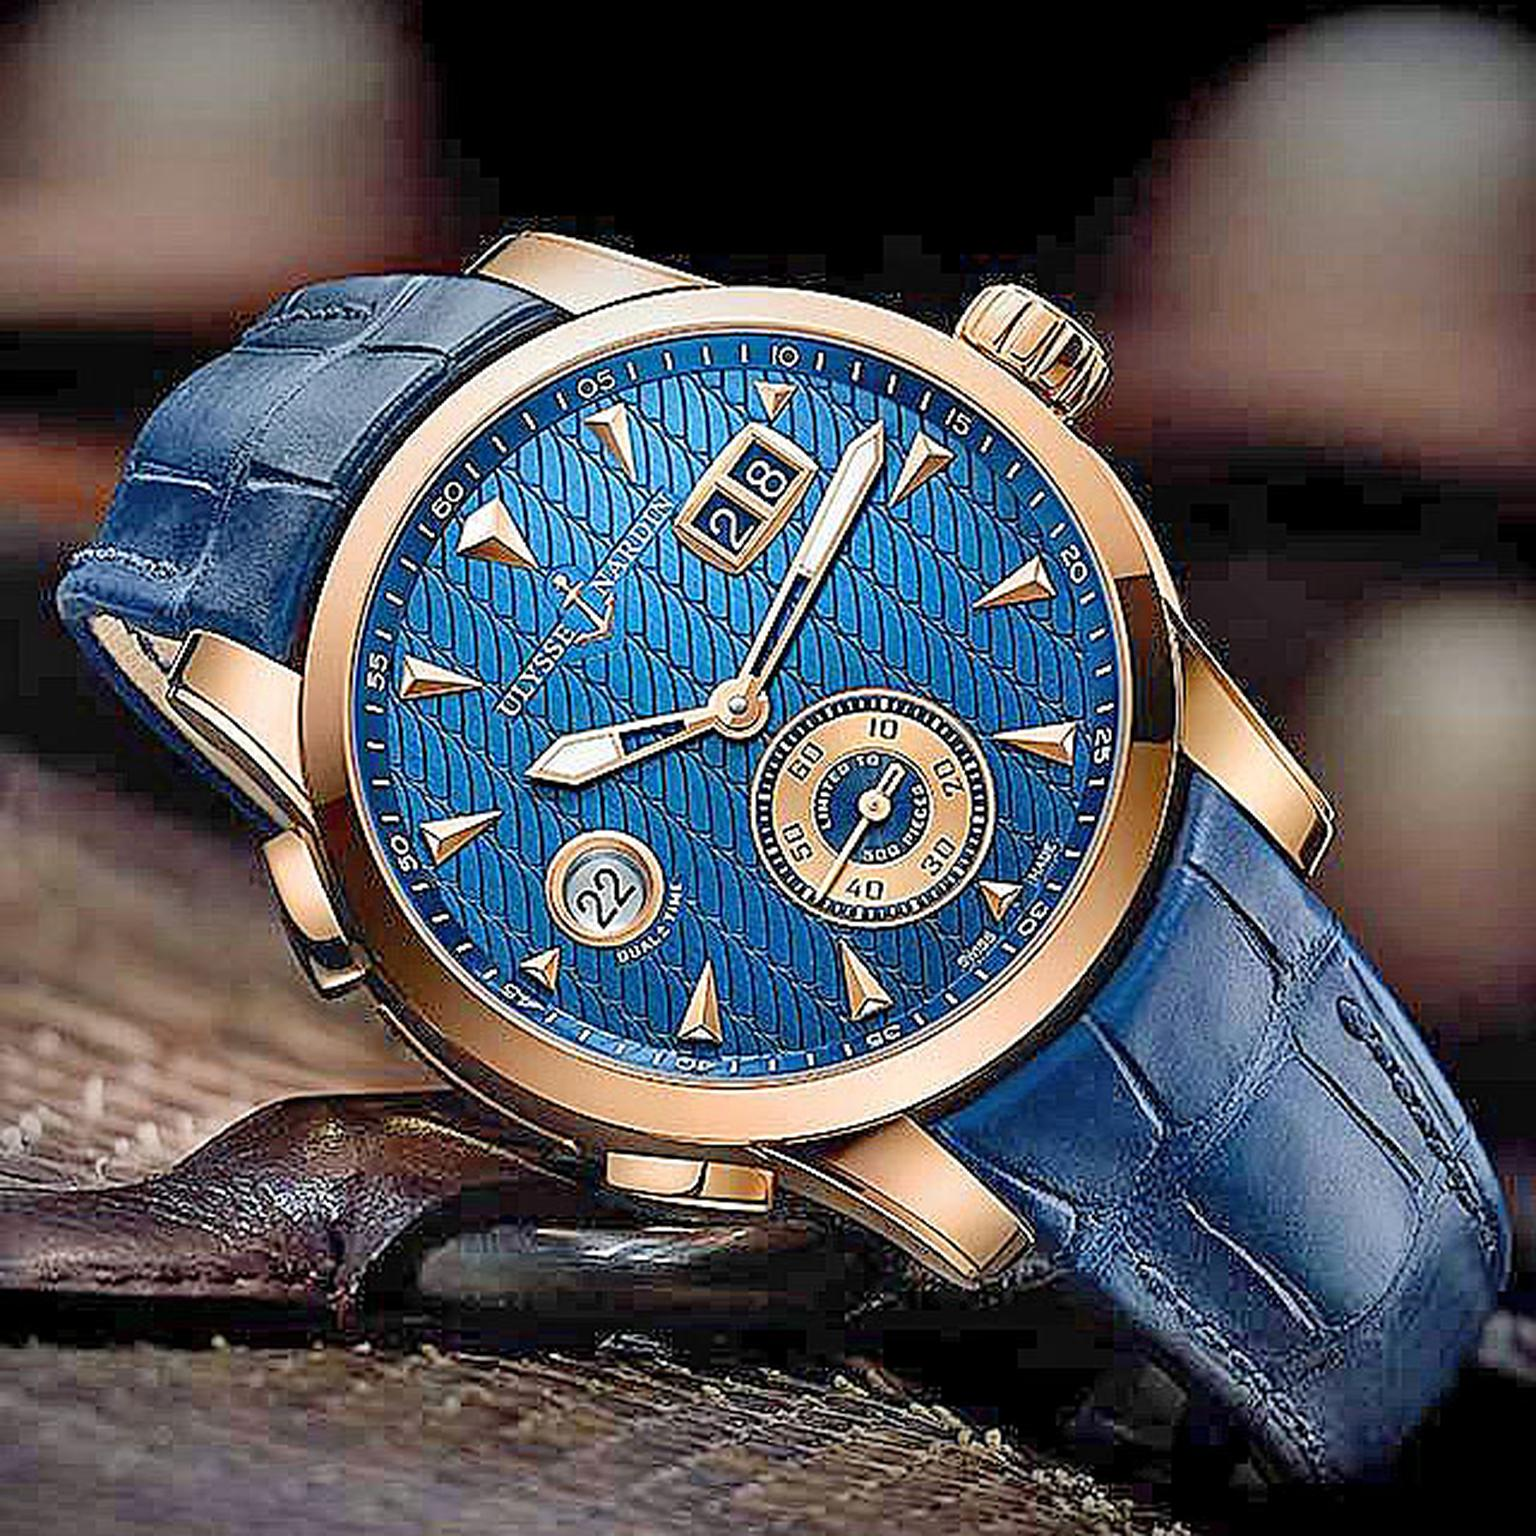 Ulysee Nardin Dual Time manufacture watch